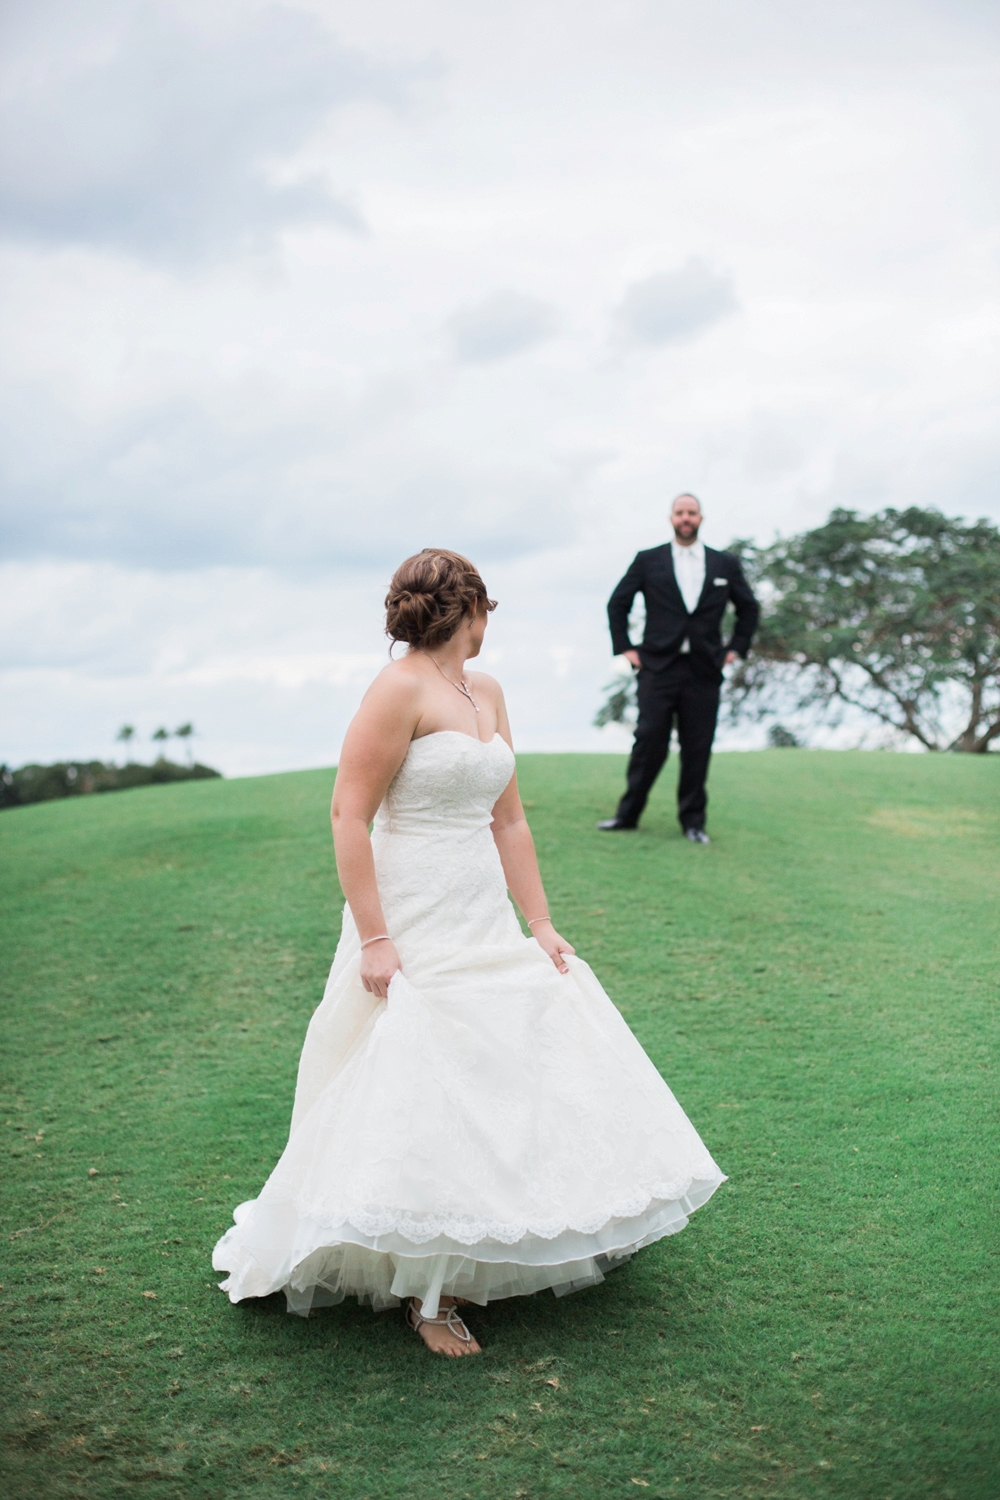 willoughby-golf-club-wedding-pictures_0020.jpg